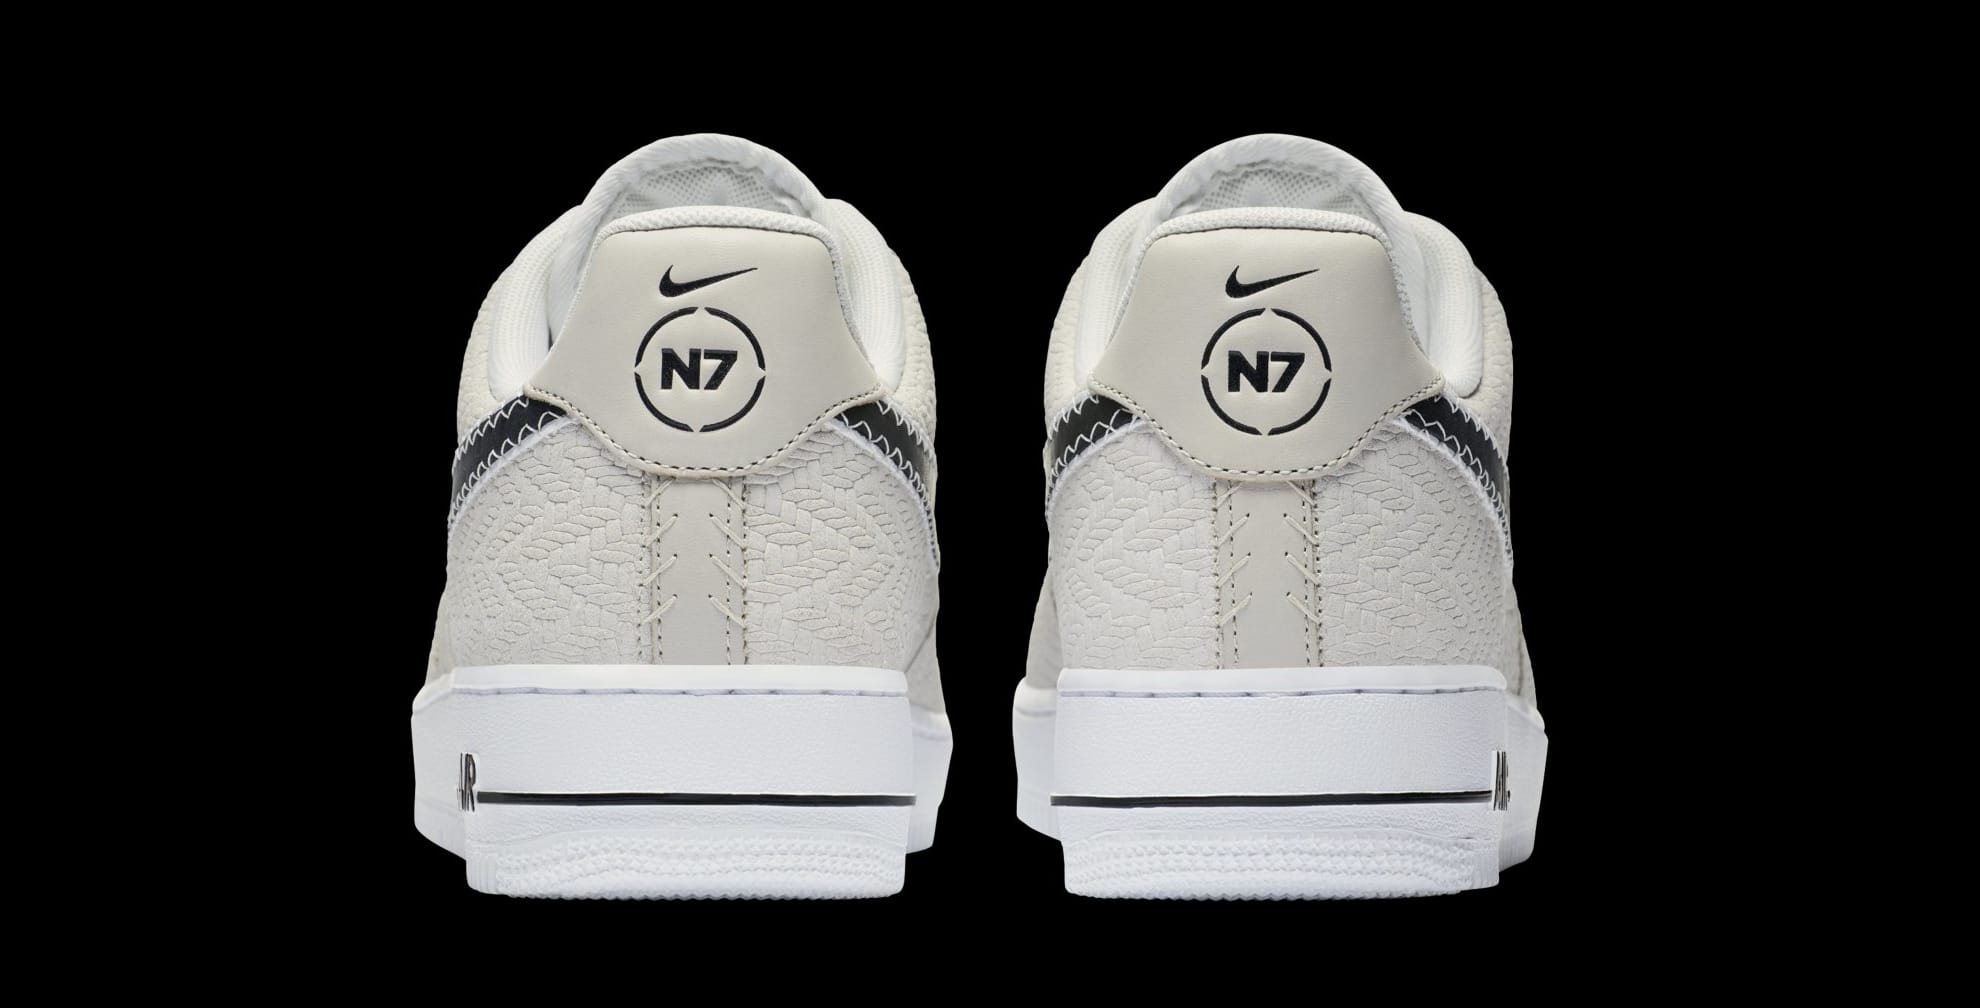 Nike Air Force 1 Low 'N7' AO2369-001 (Heel)